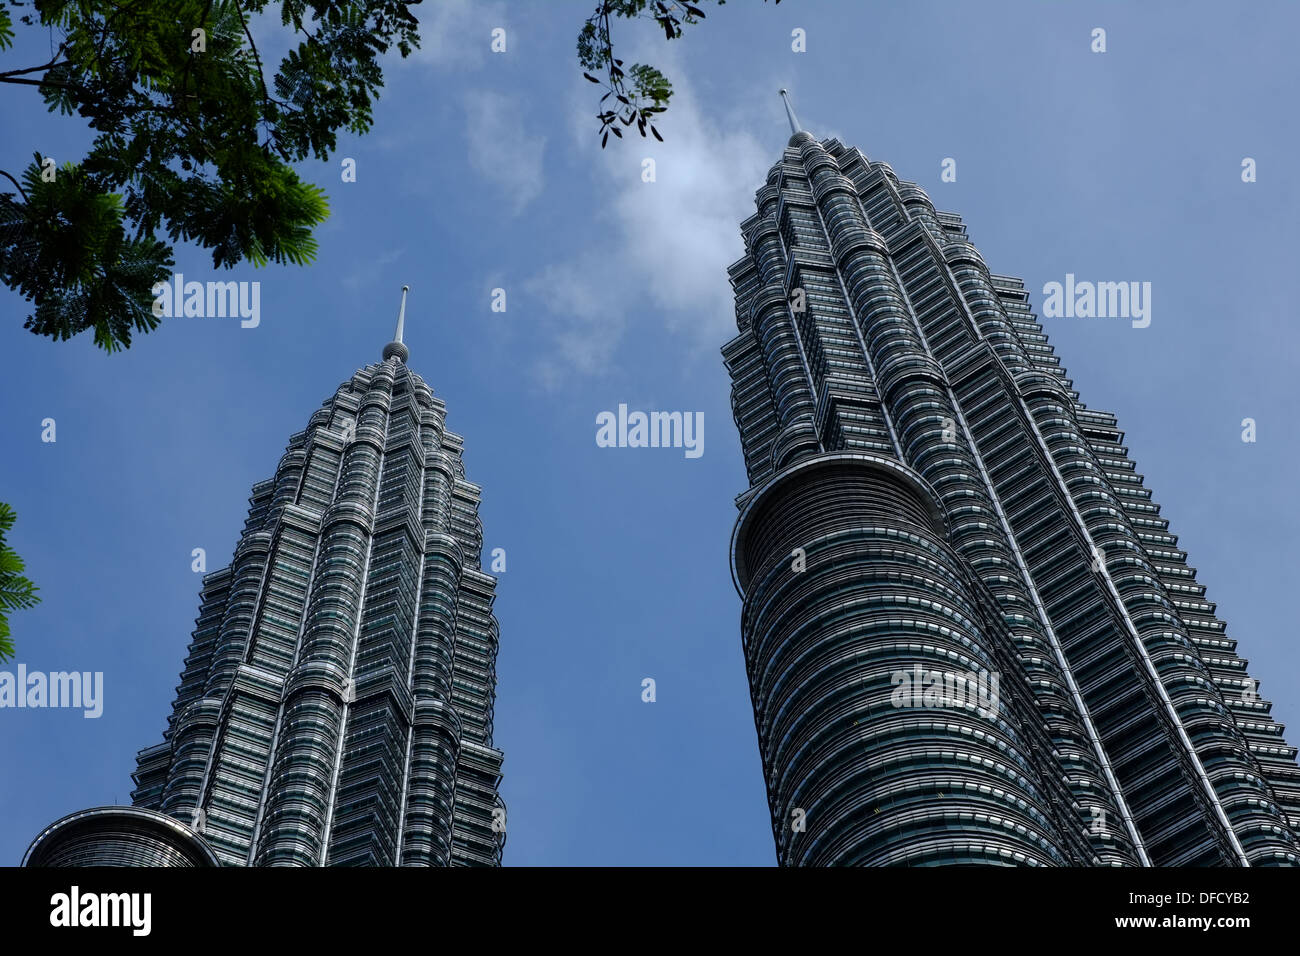 Petronas Twin Towers - Stock Image